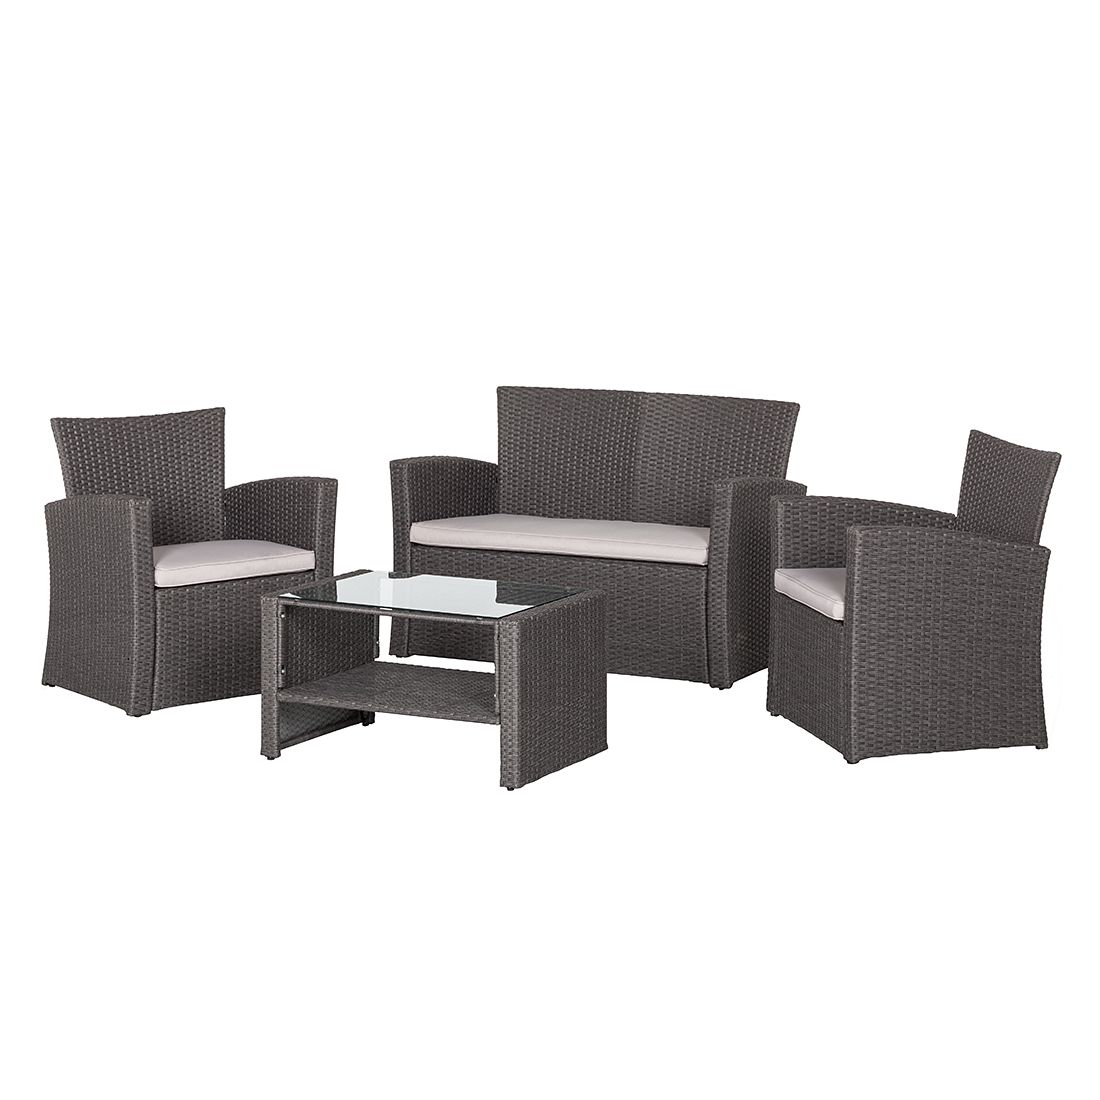 sitzgruppe brindisi 4 teilig polyrattan dunkelgrau. Black Bedroom Furniture Sets. Home Design Ideas